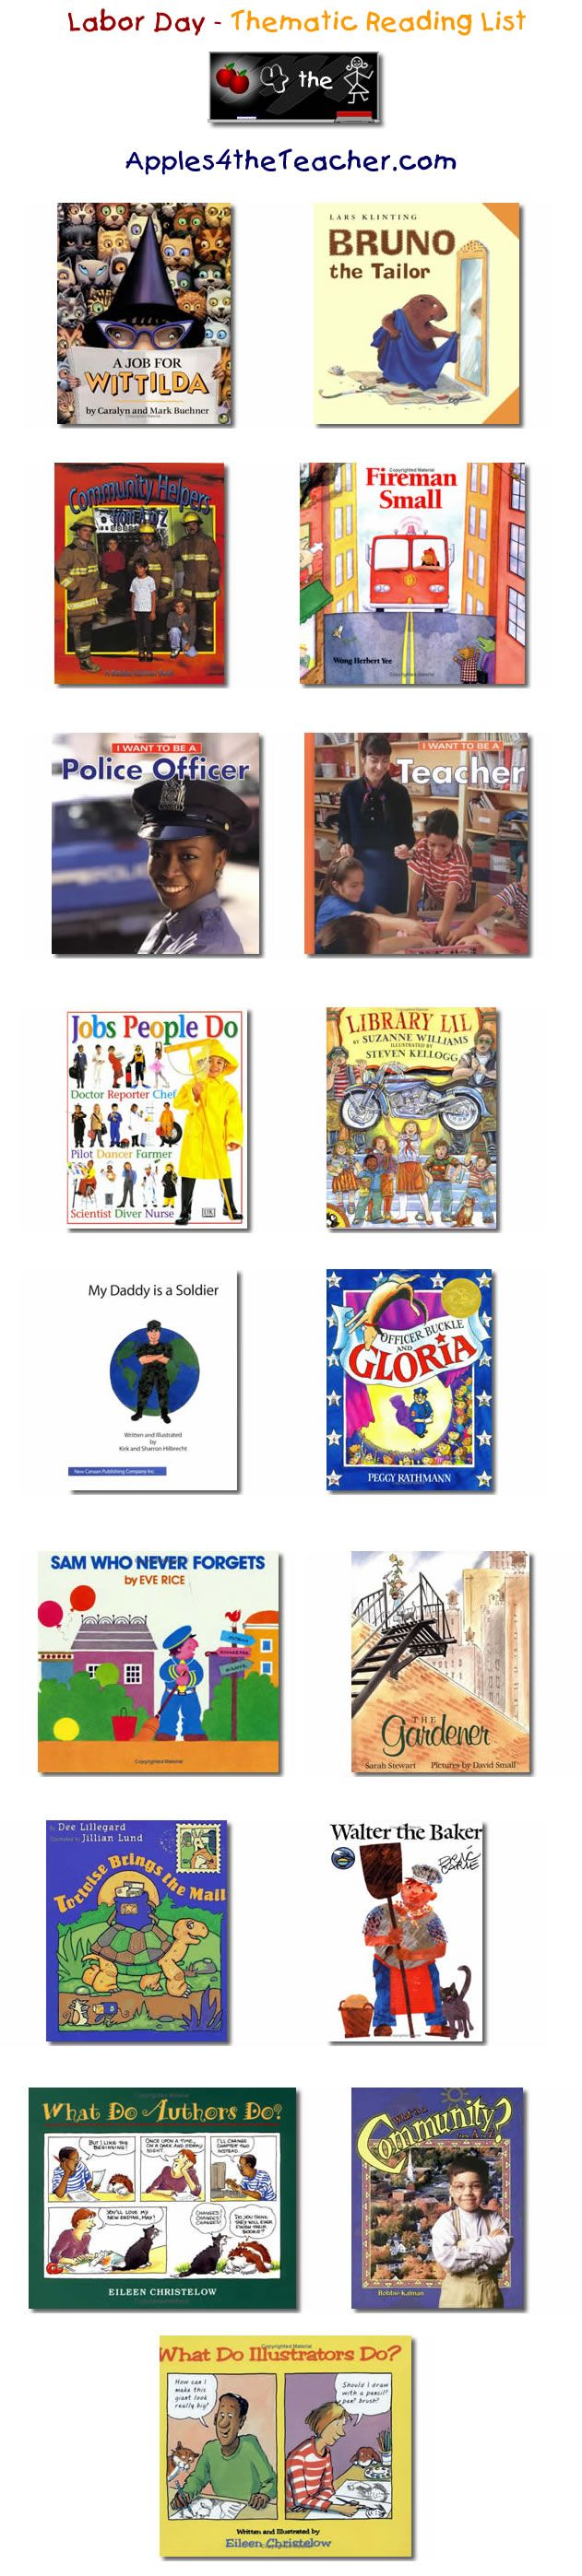 hight resolution of Suggested thematic reading list for Labor Day - Labor Day books for kids.    Kids learning activities